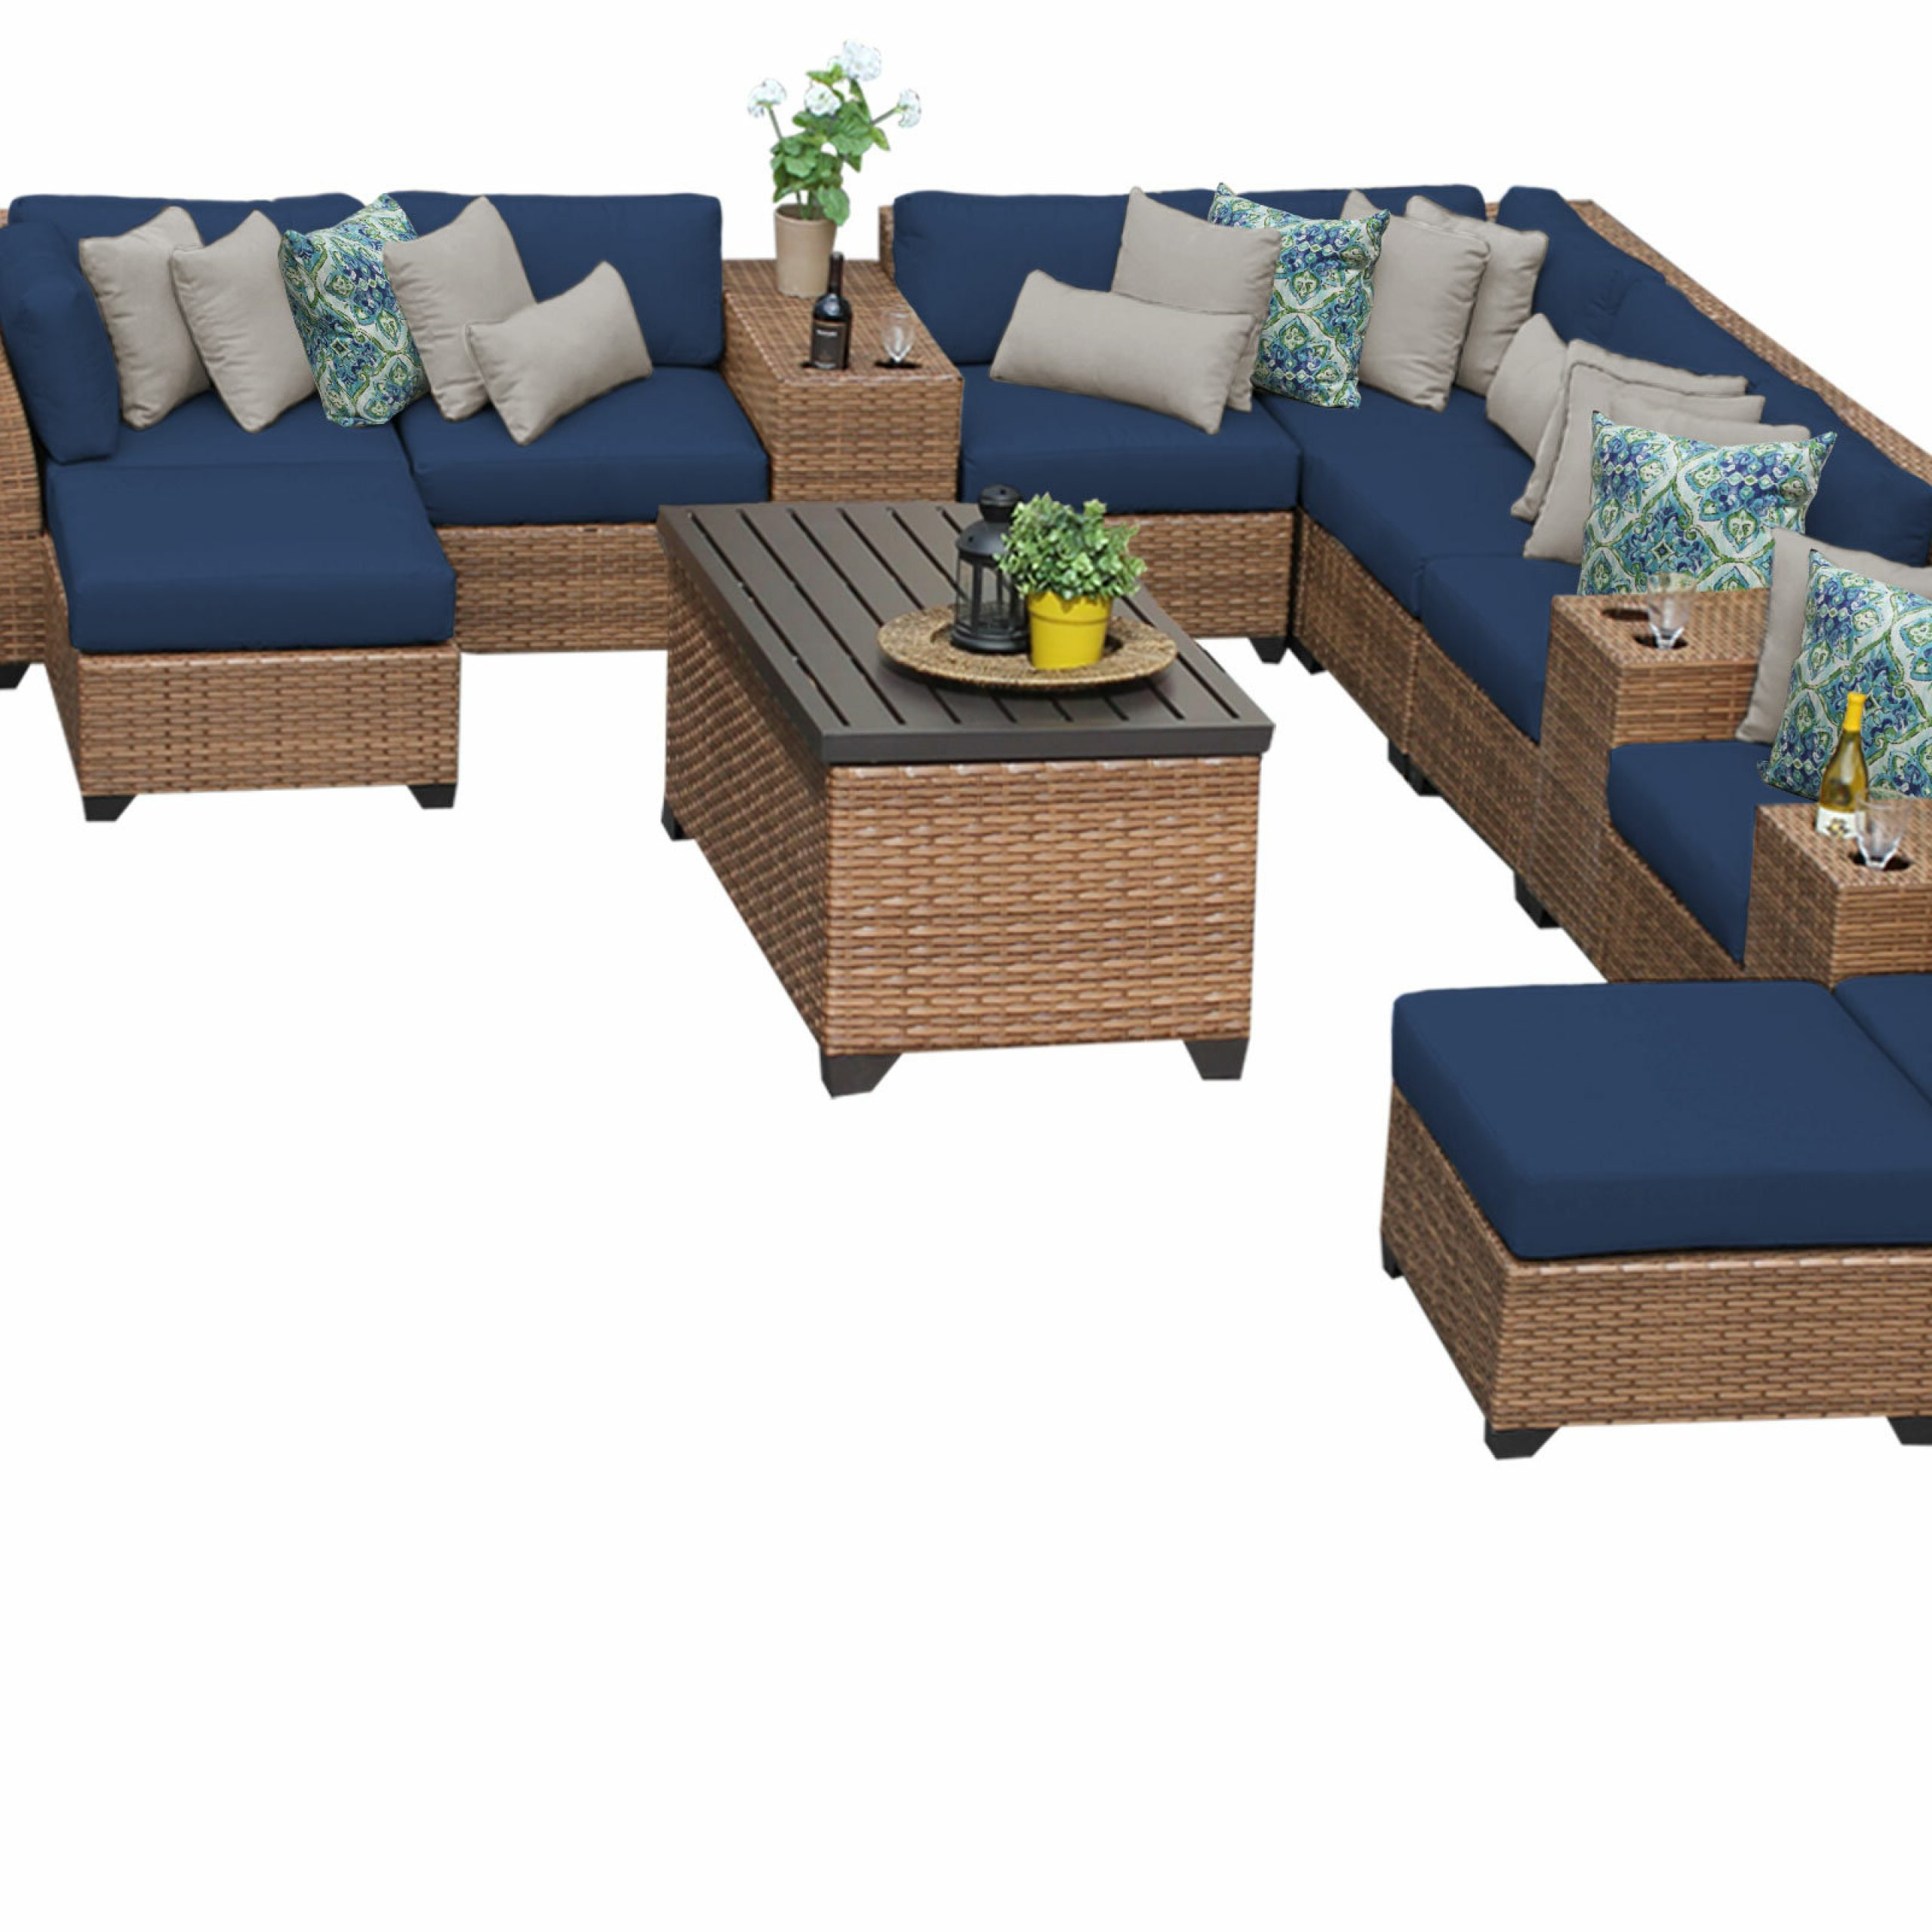 Waterbury Patio Sectionals With Cushions Throughout Newest Waterbury 17 Piece Sectional Seating Group With Cushions (View 11 of 25)